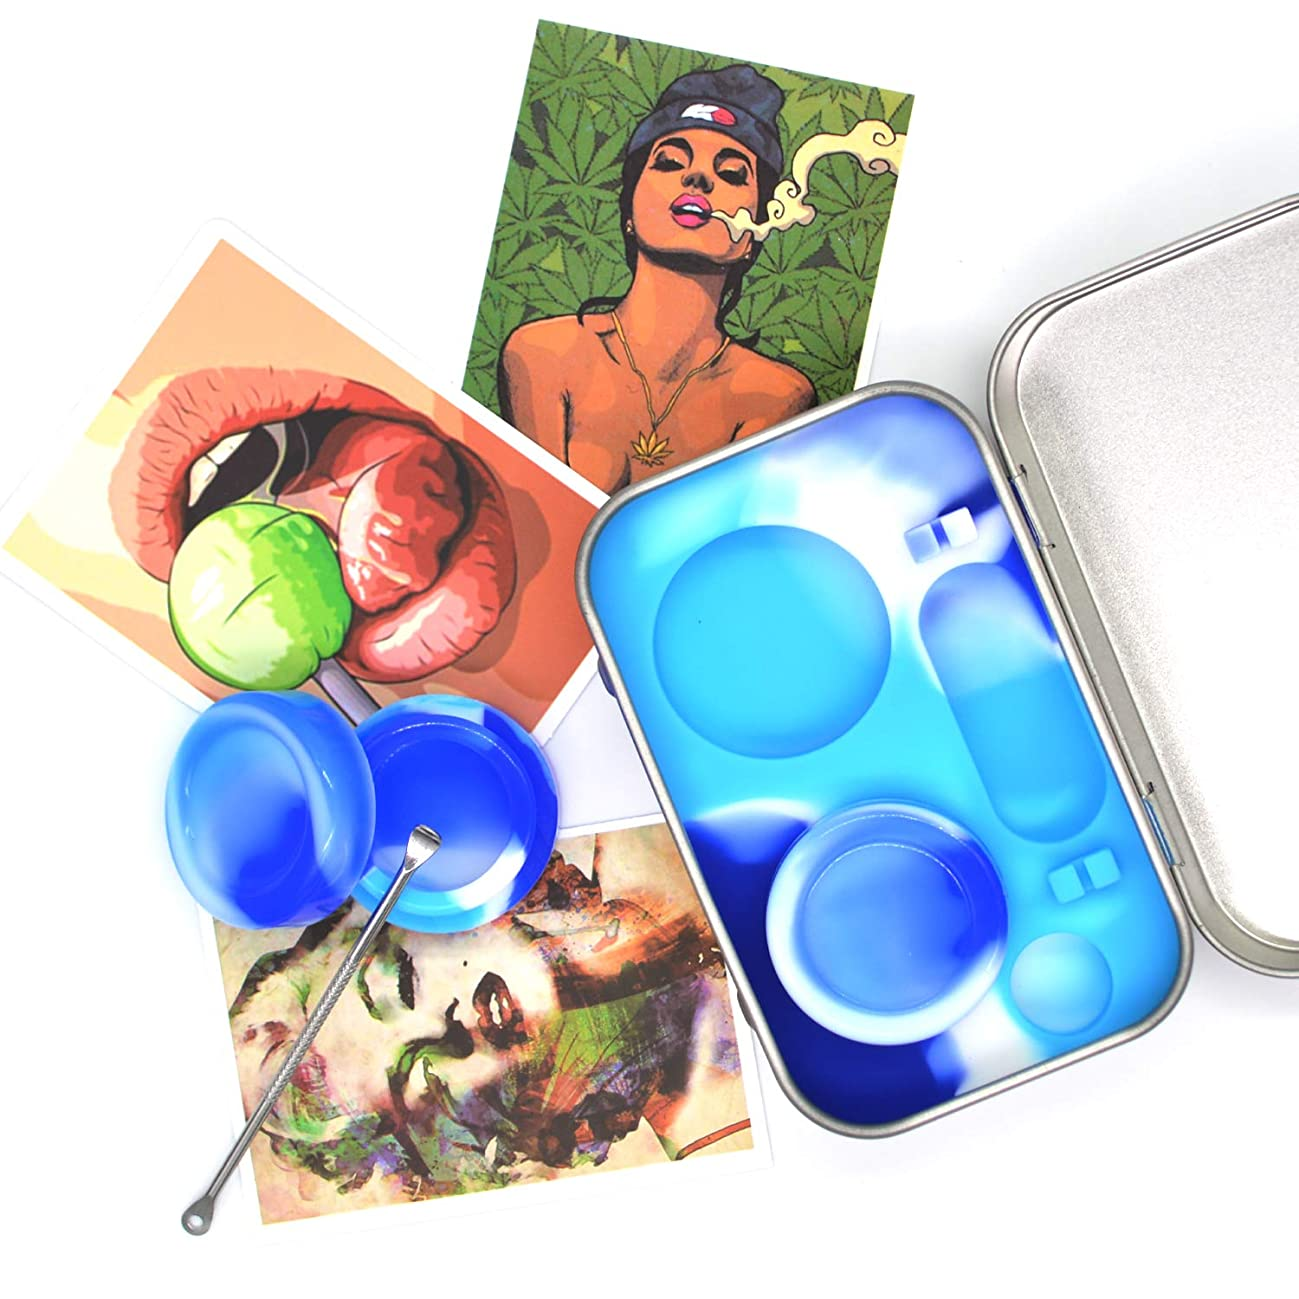 Auchee Wax Oil Container Carving Tool Travel Kit 5ml Silicone Jar (2 units) + Carving Tool (1) + Psychedelic Vinyl Decals Sticker (3) for Storage Sticky Concentration,Balm (Tin Box Kit-Skyblue)